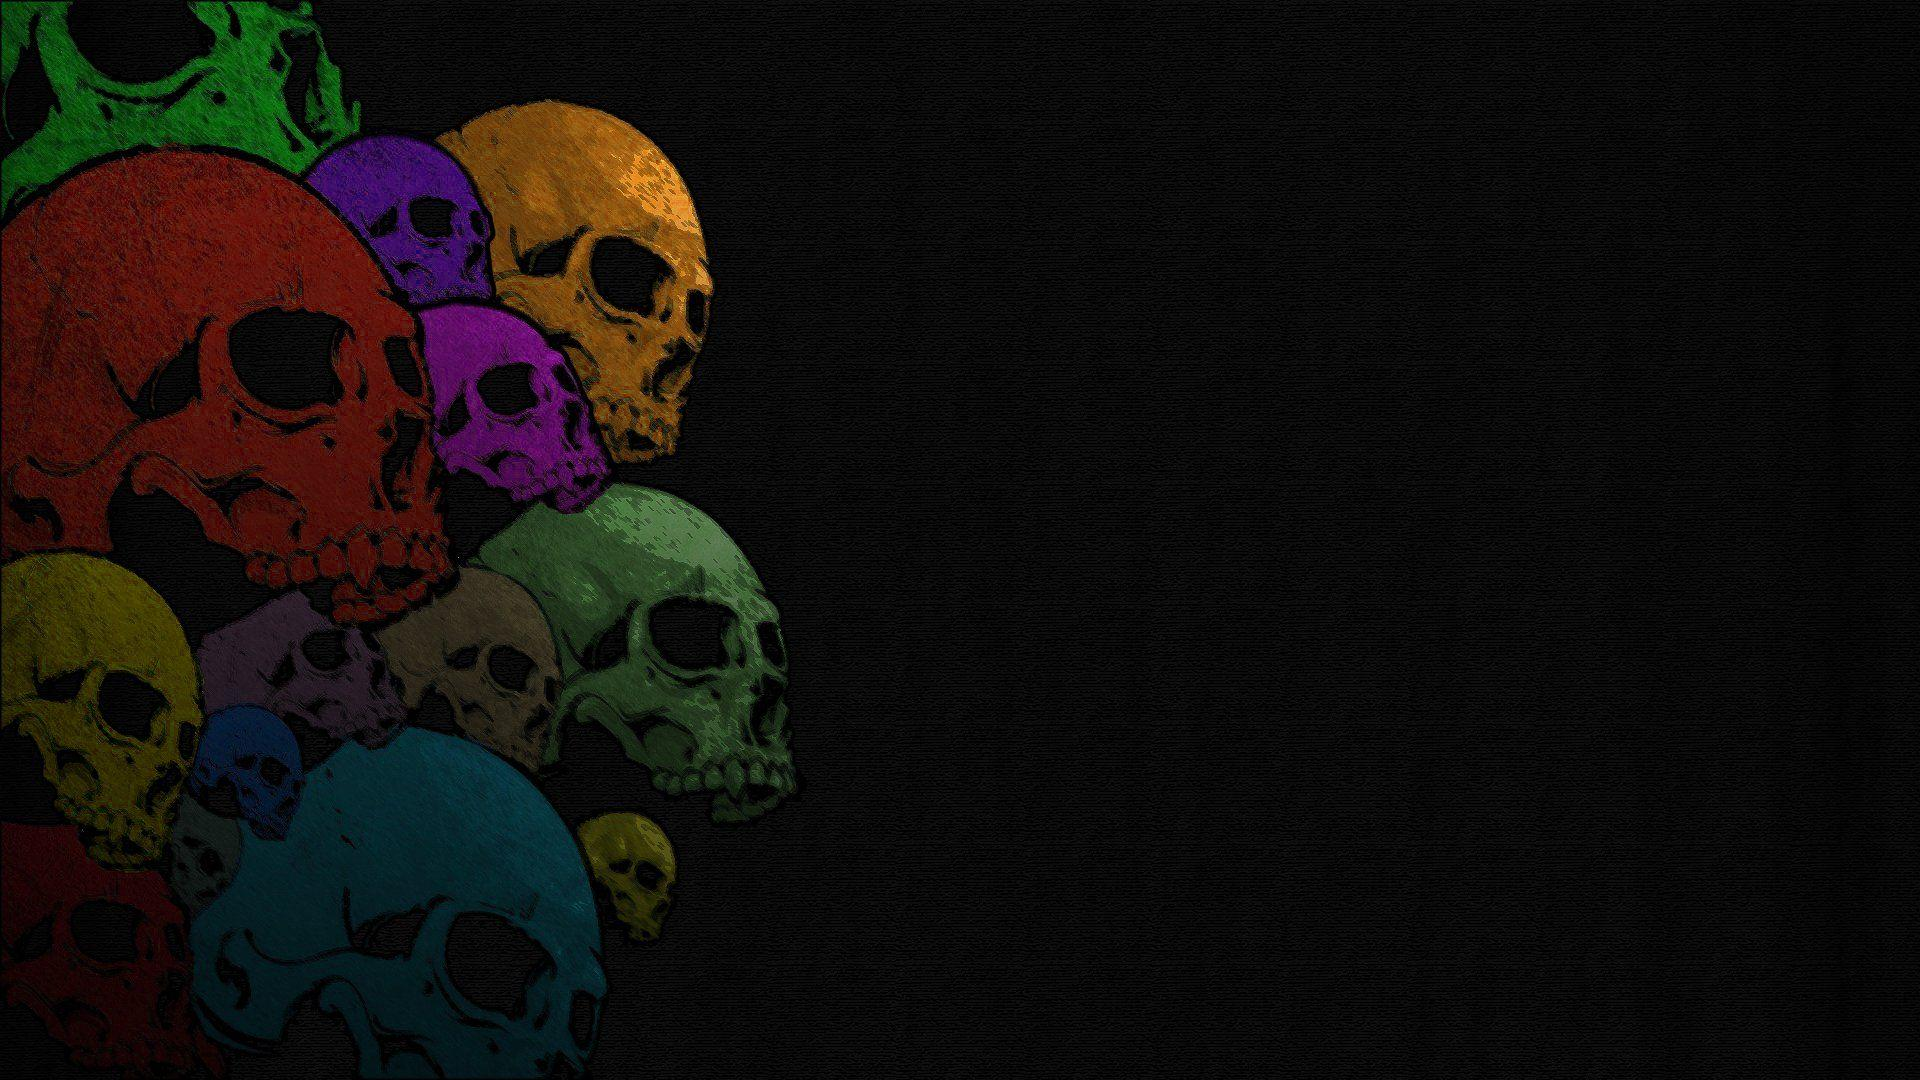 Purple Skull Wallpapers Wallpaper Cave